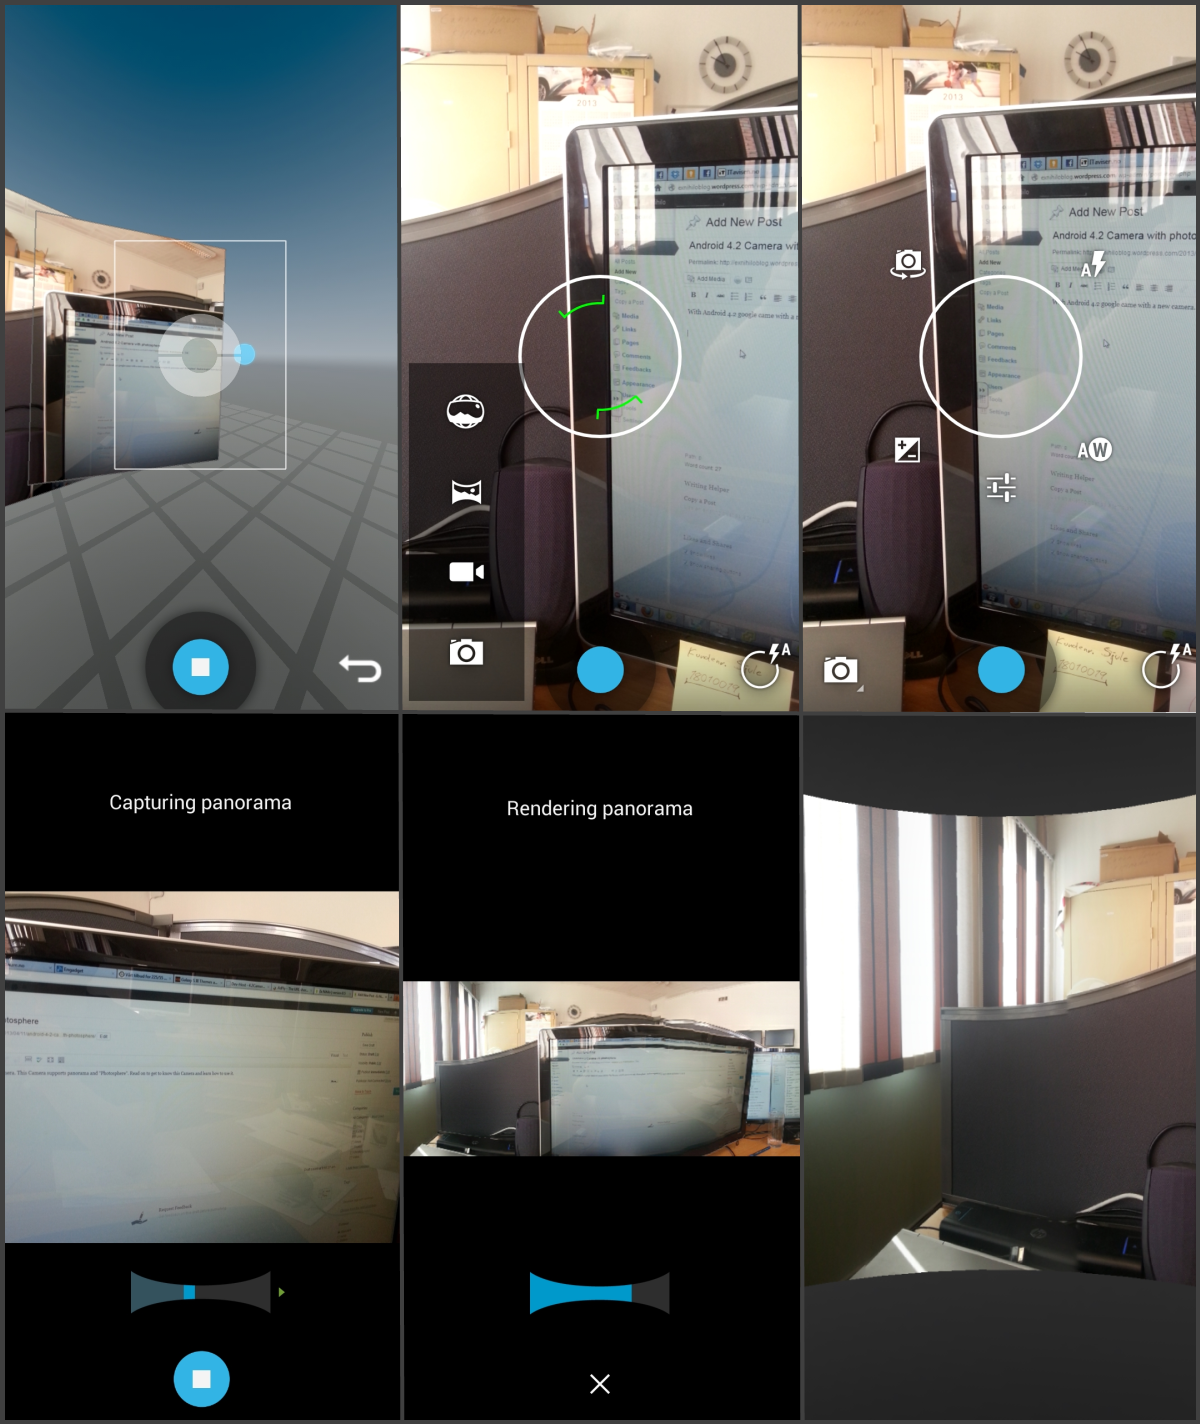 Android 4.2 Camera With Photosphere